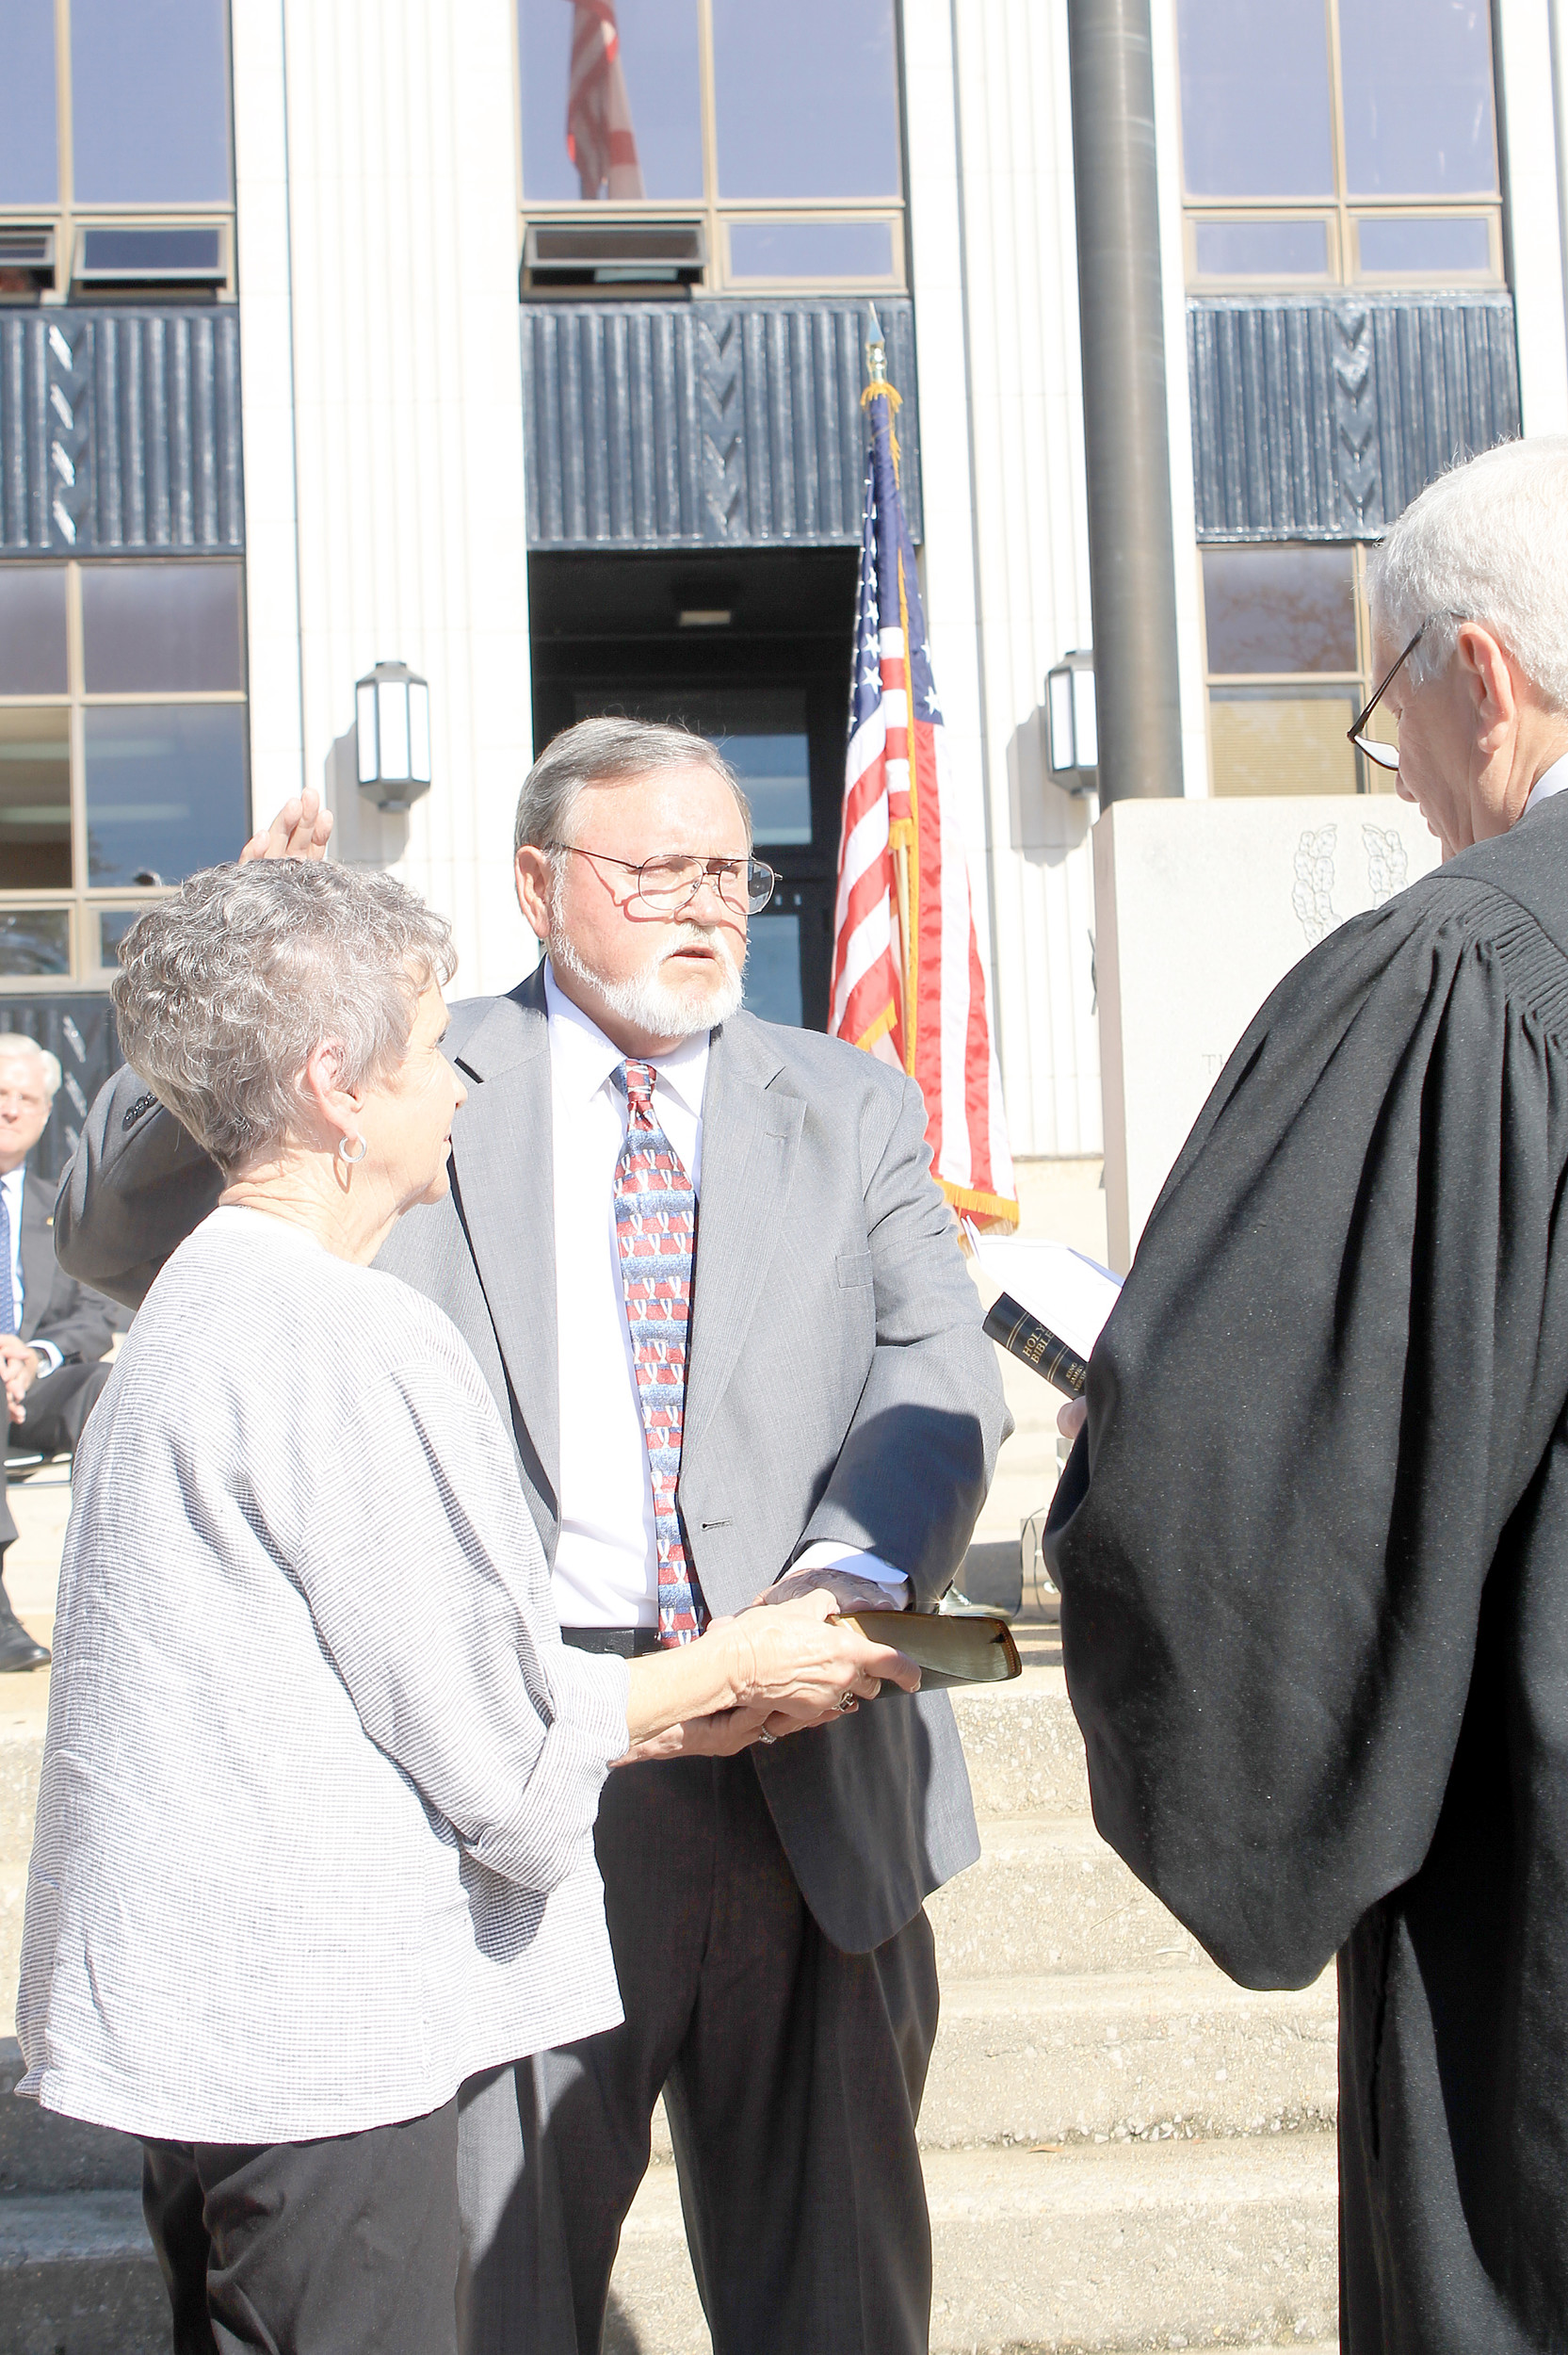 Jerry Bishop takes the oath of office as he is sworn in Wednesday morning as the new chairman of the Walker County Commission. The ceremony was held on the courthouse square in downtown Jasper. Daily Mountain Eagle - Jennifer Cohron